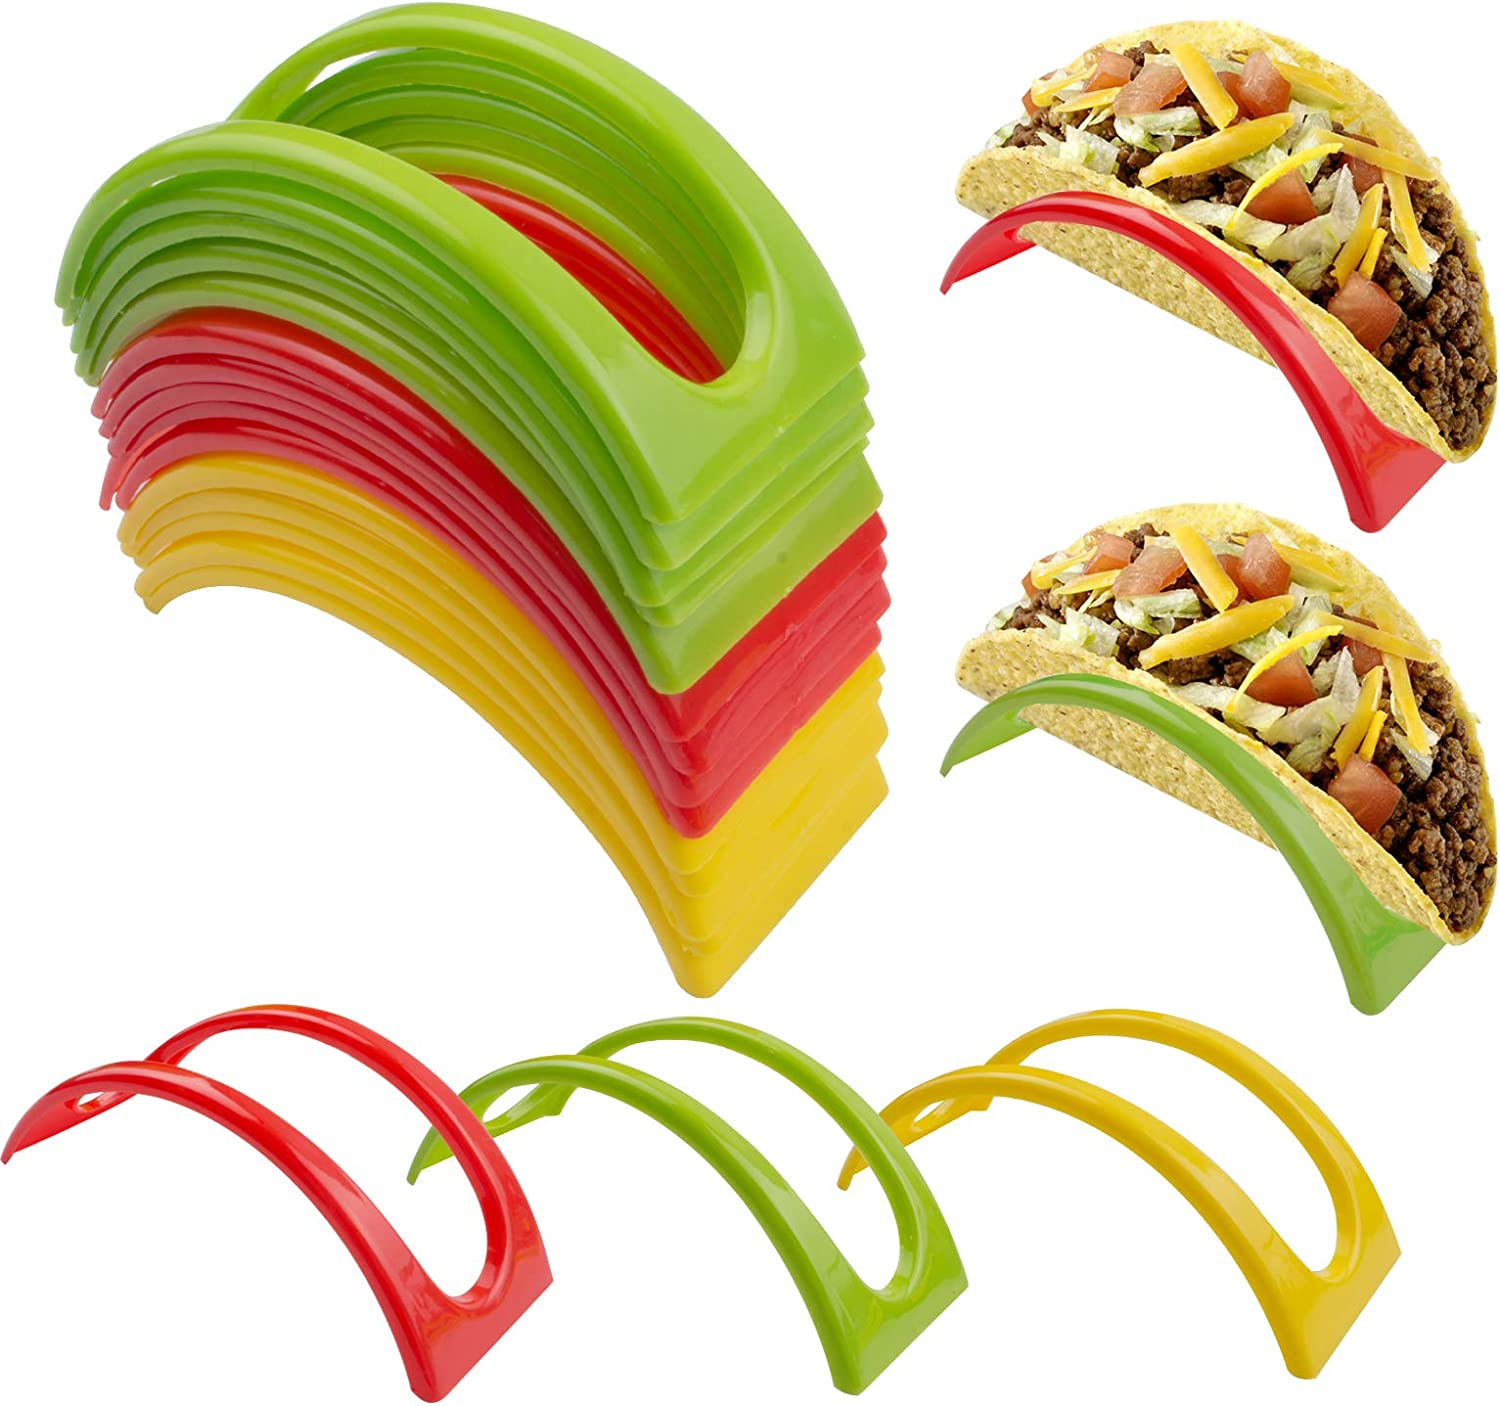 Taco Holder Stand up Set of 24, Colorful Plastic Taco Shell Holder Plate Protector Food Holder, Taco Tray Rack for Taco Tuesday Taco Bar Taco Party Supplies(Red,Yellow,Green)